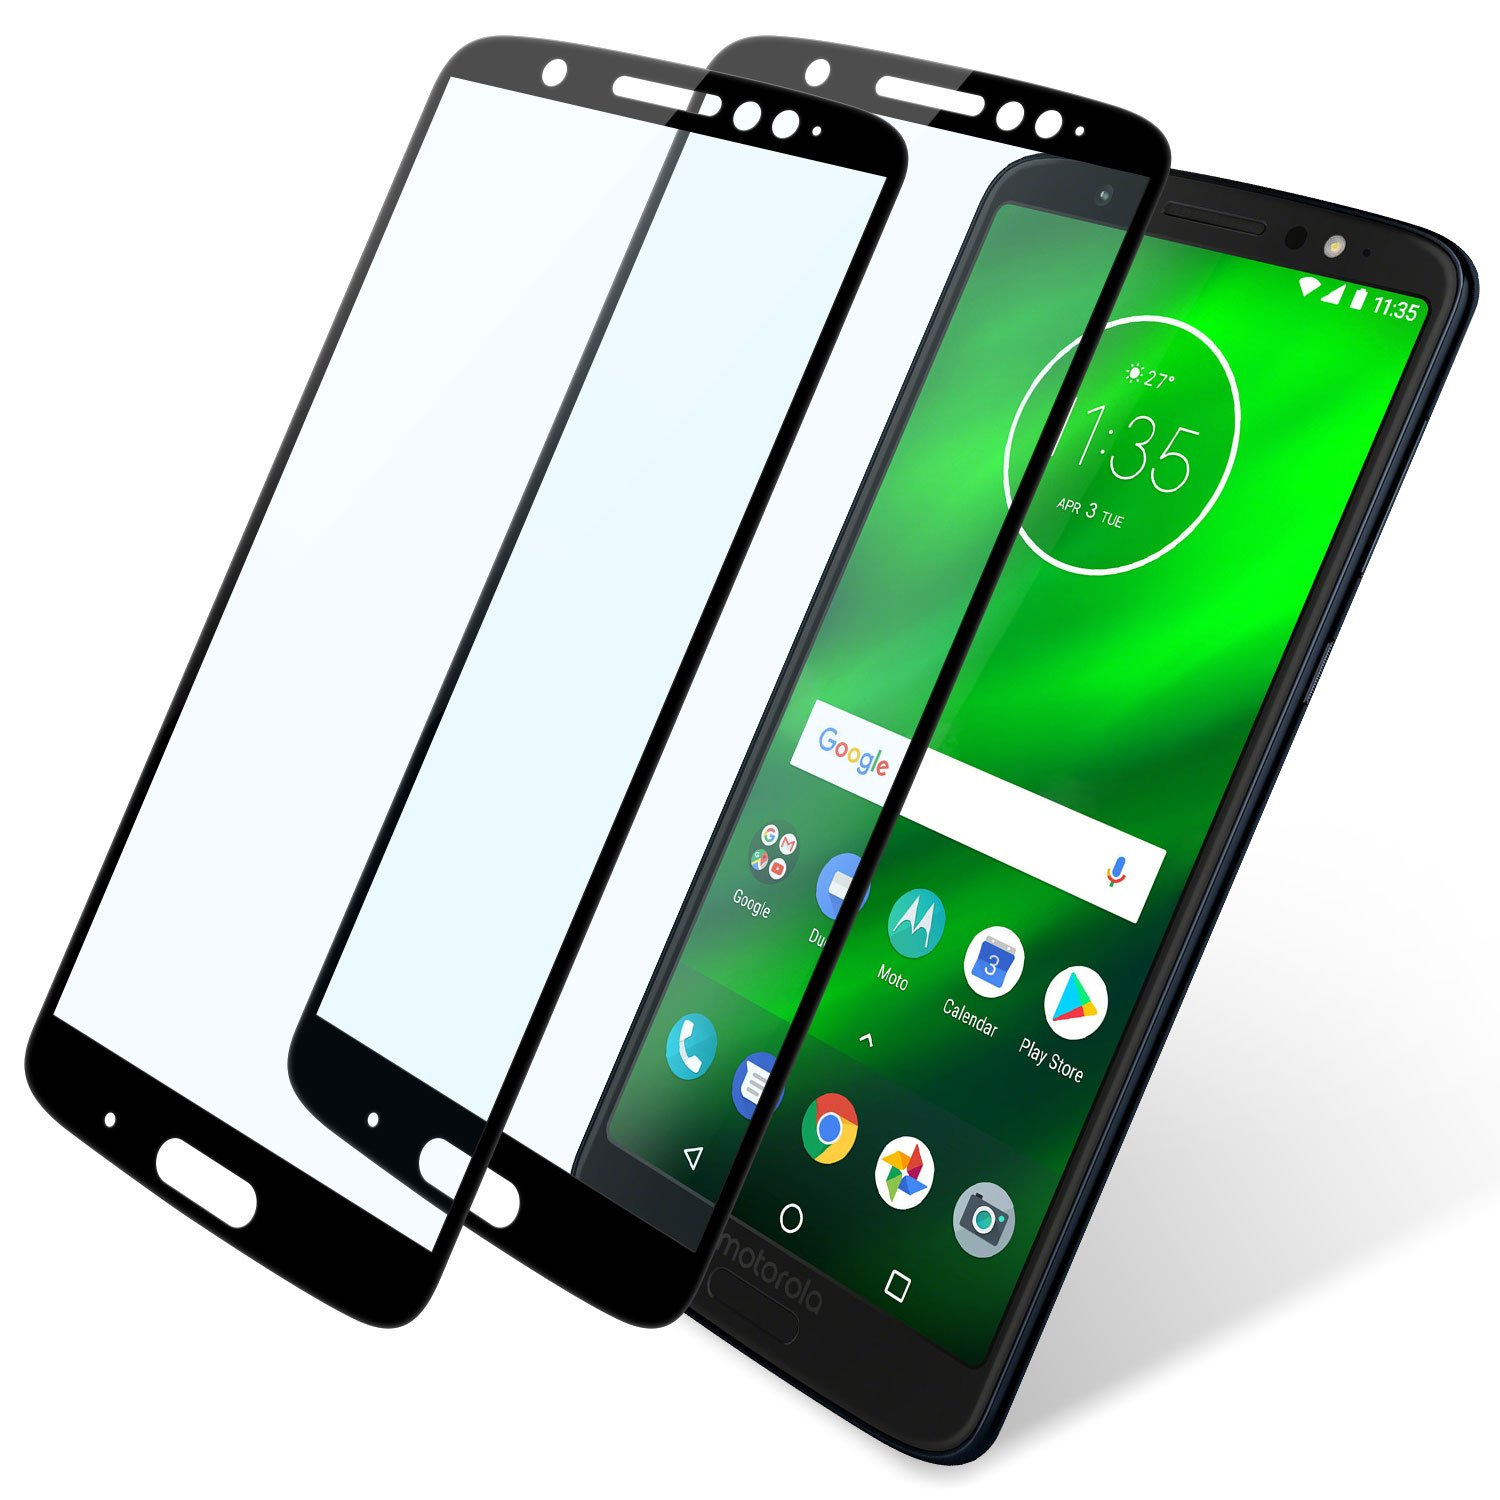 Moto G6 Plus Screen Protector Full Coverage, 2 Pack Niyattn Tempered Glass Screen Protector for Moto G6 Plus 5.9 inch with Double Shielding/Bubble Free/Case Friendly, Black high-quality